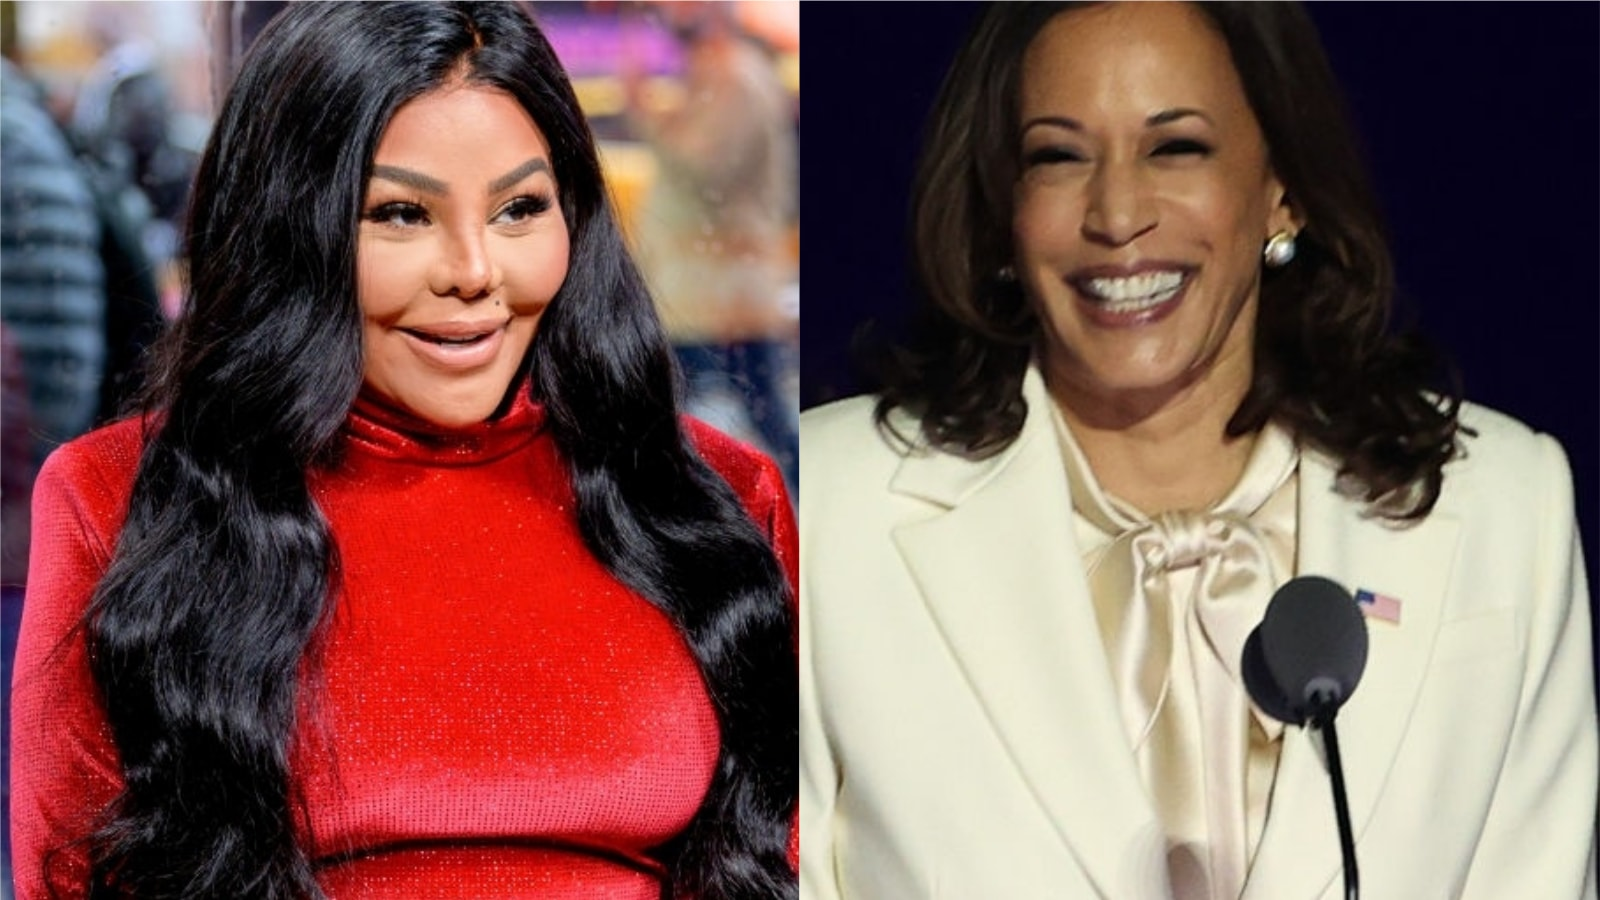 Lil' Kim Celebrates Kamala Harris'  Victory Despite VP-Elect's Past Remarks About Rapper: 'Support Sis, Anyway'